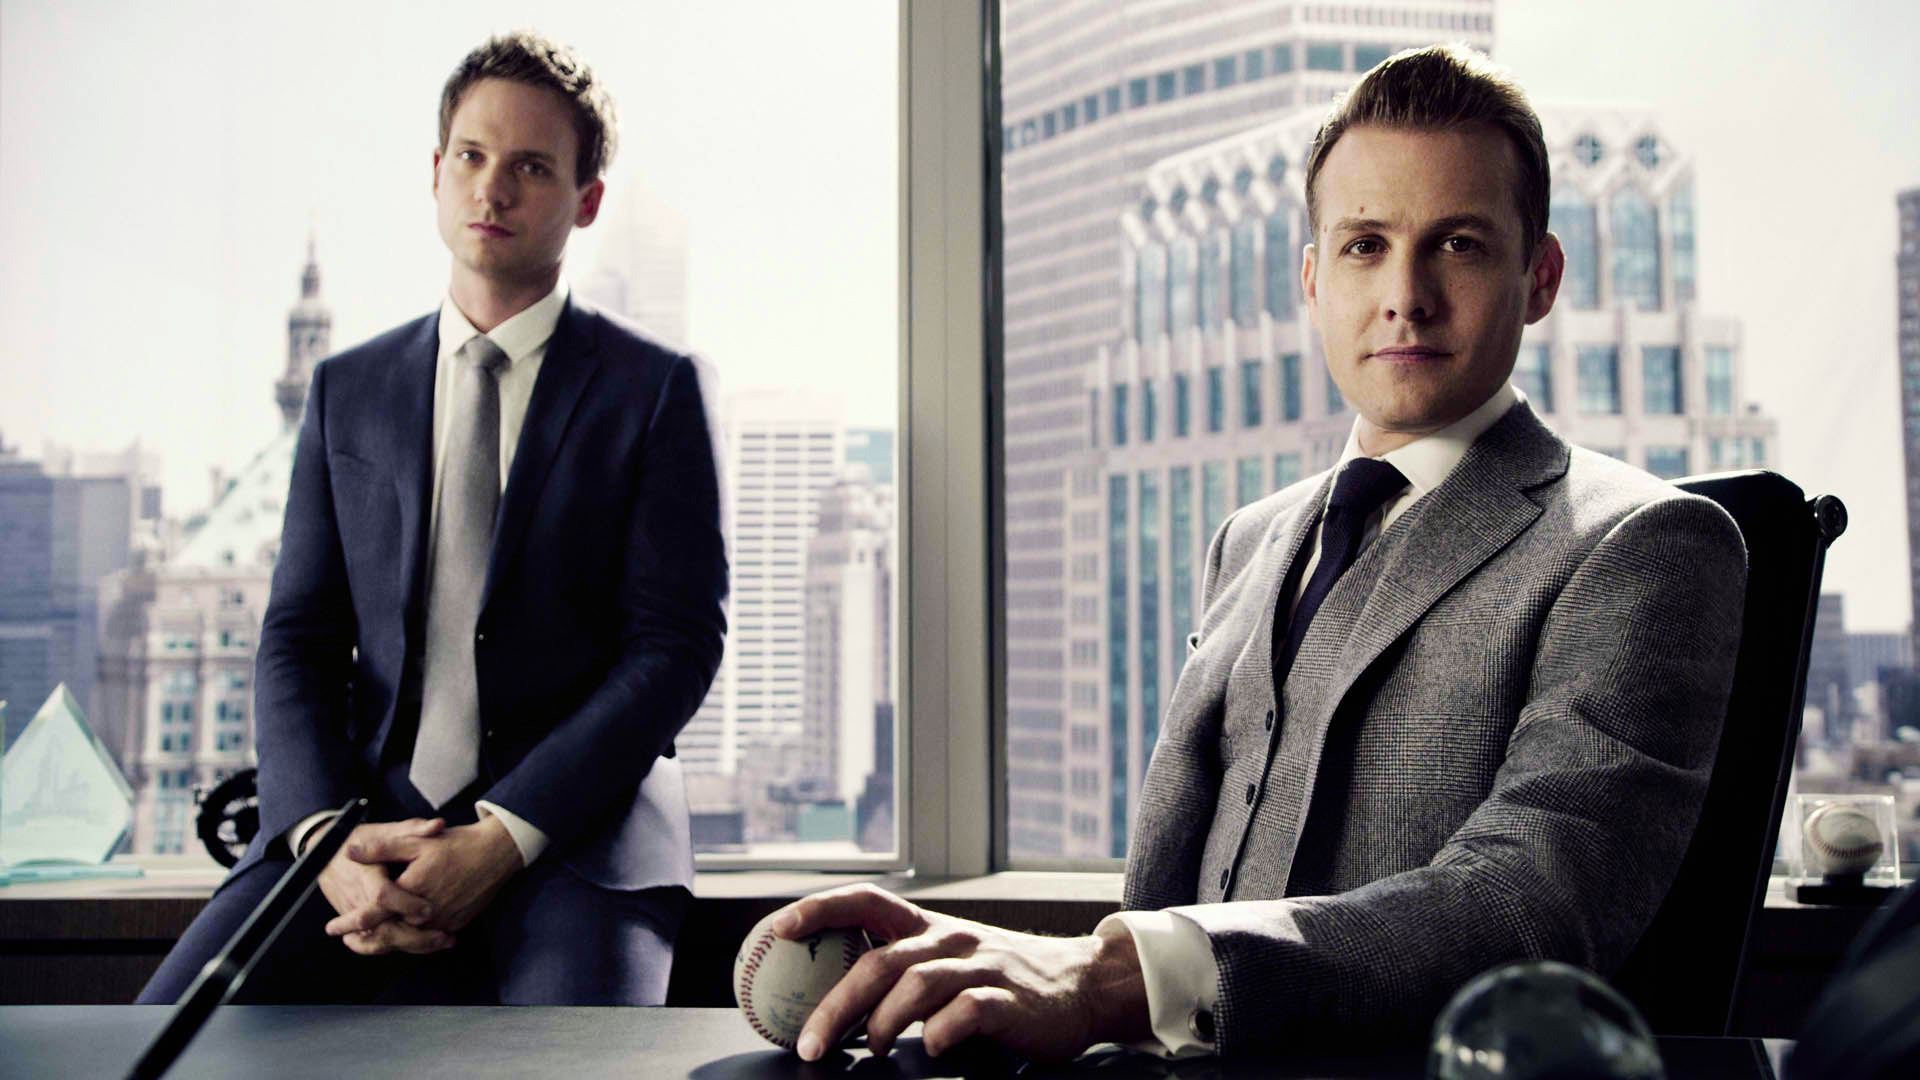 100% Quality Suits Hd Wallpapers, Px For Pc & Mac, - Best Suits On Tv , HD Wallpaper & Backgrounds